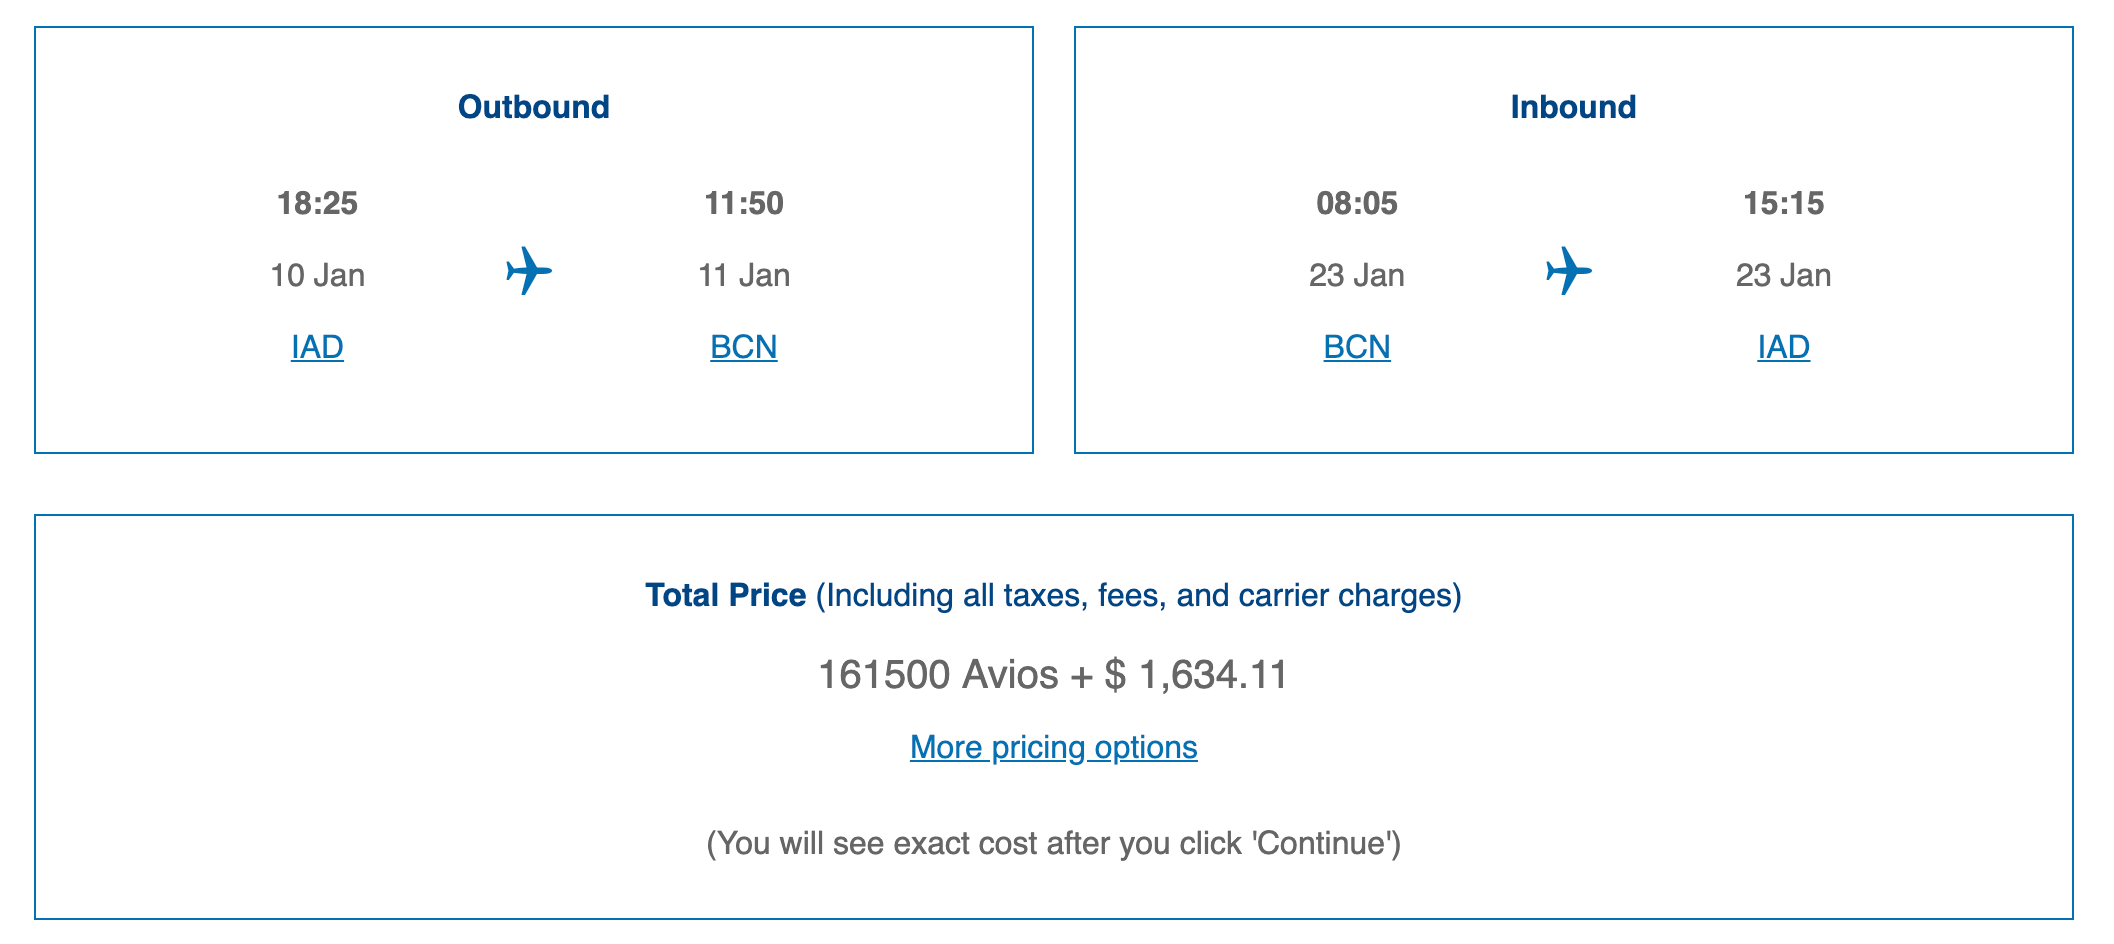 First class to Europe with Chase points